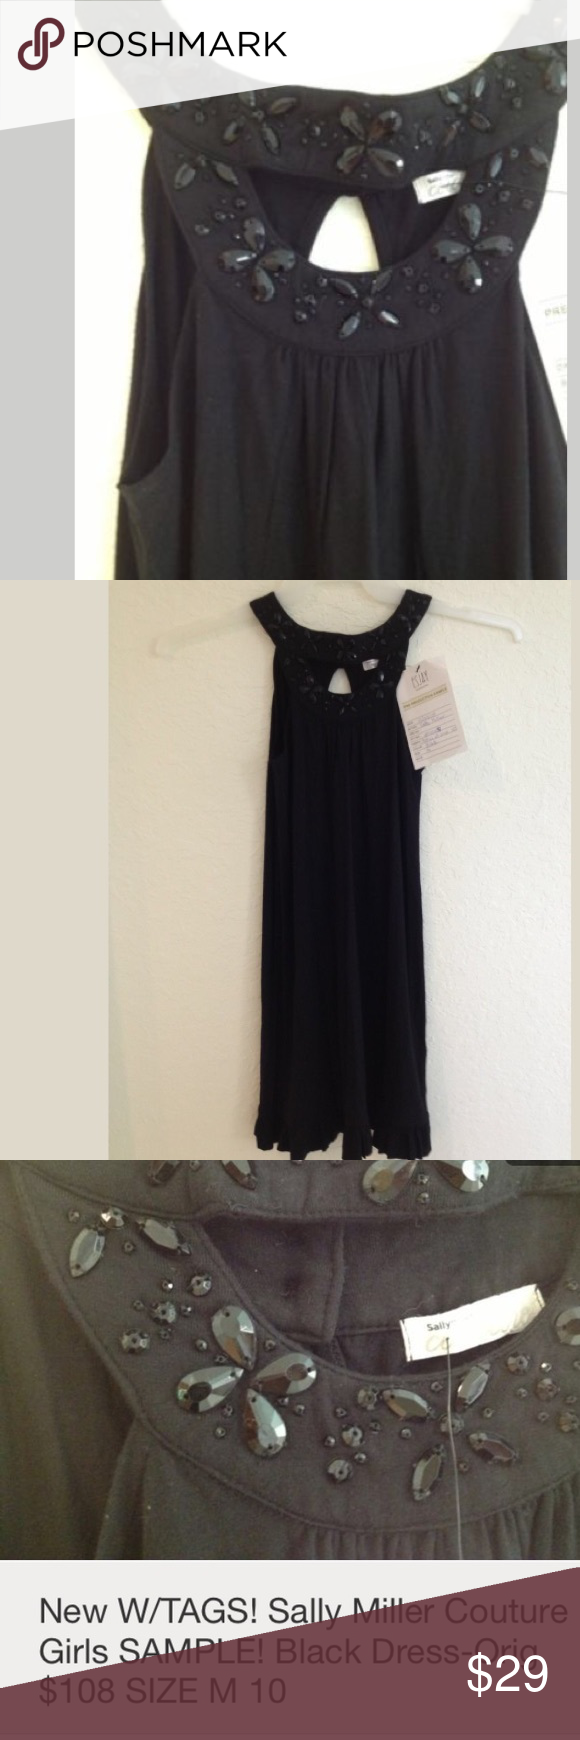 Sally miller couture girls blk heavily jewel dress boutique lord